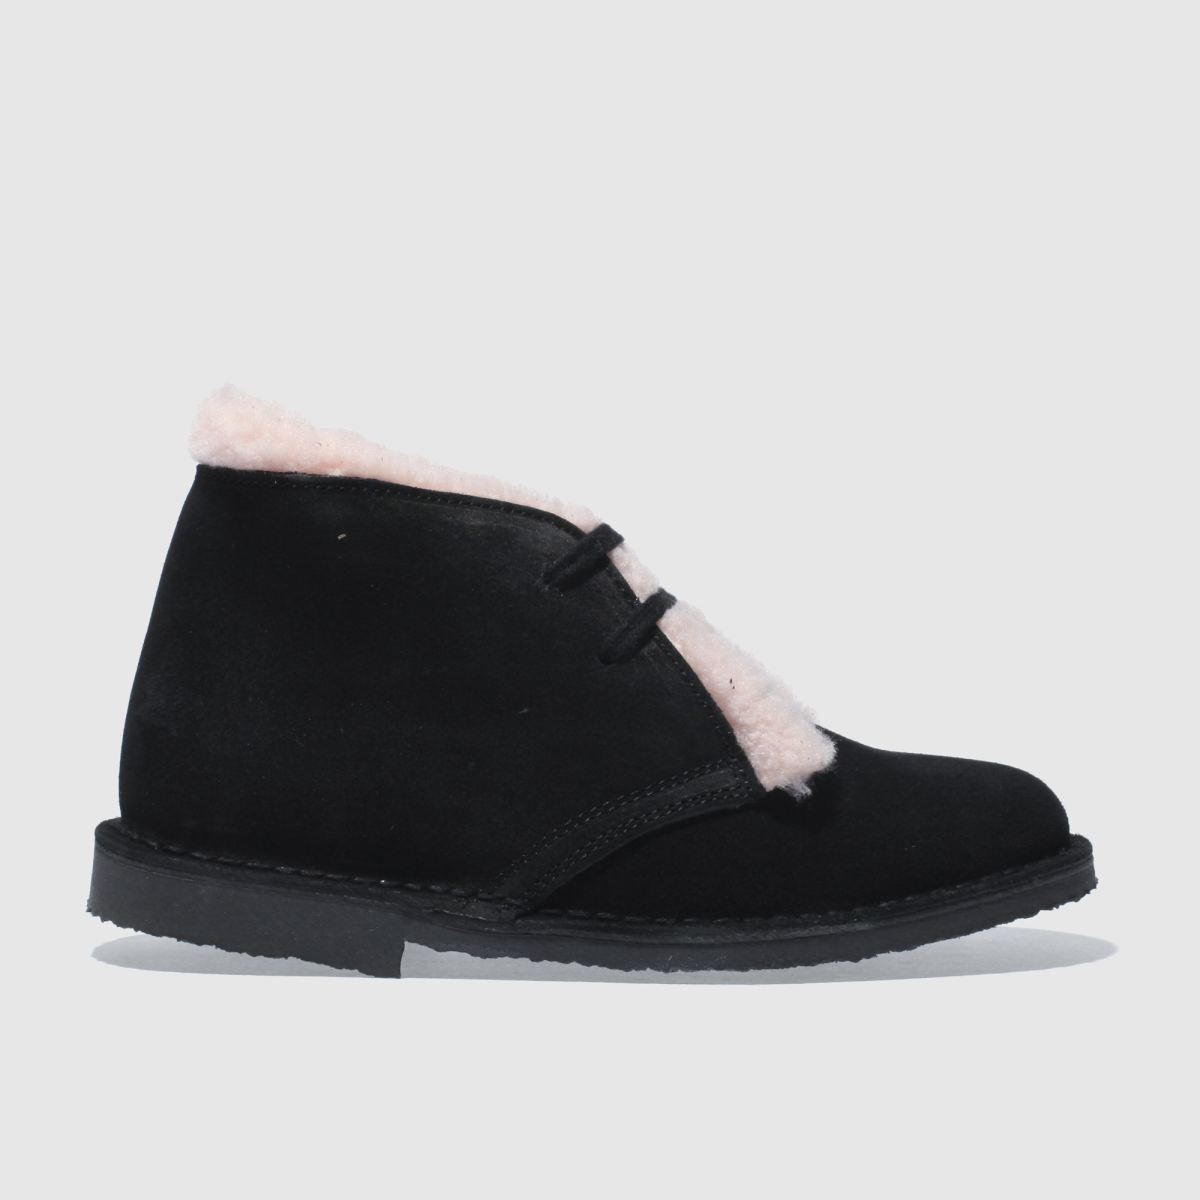 schuh black & pink nifty boots